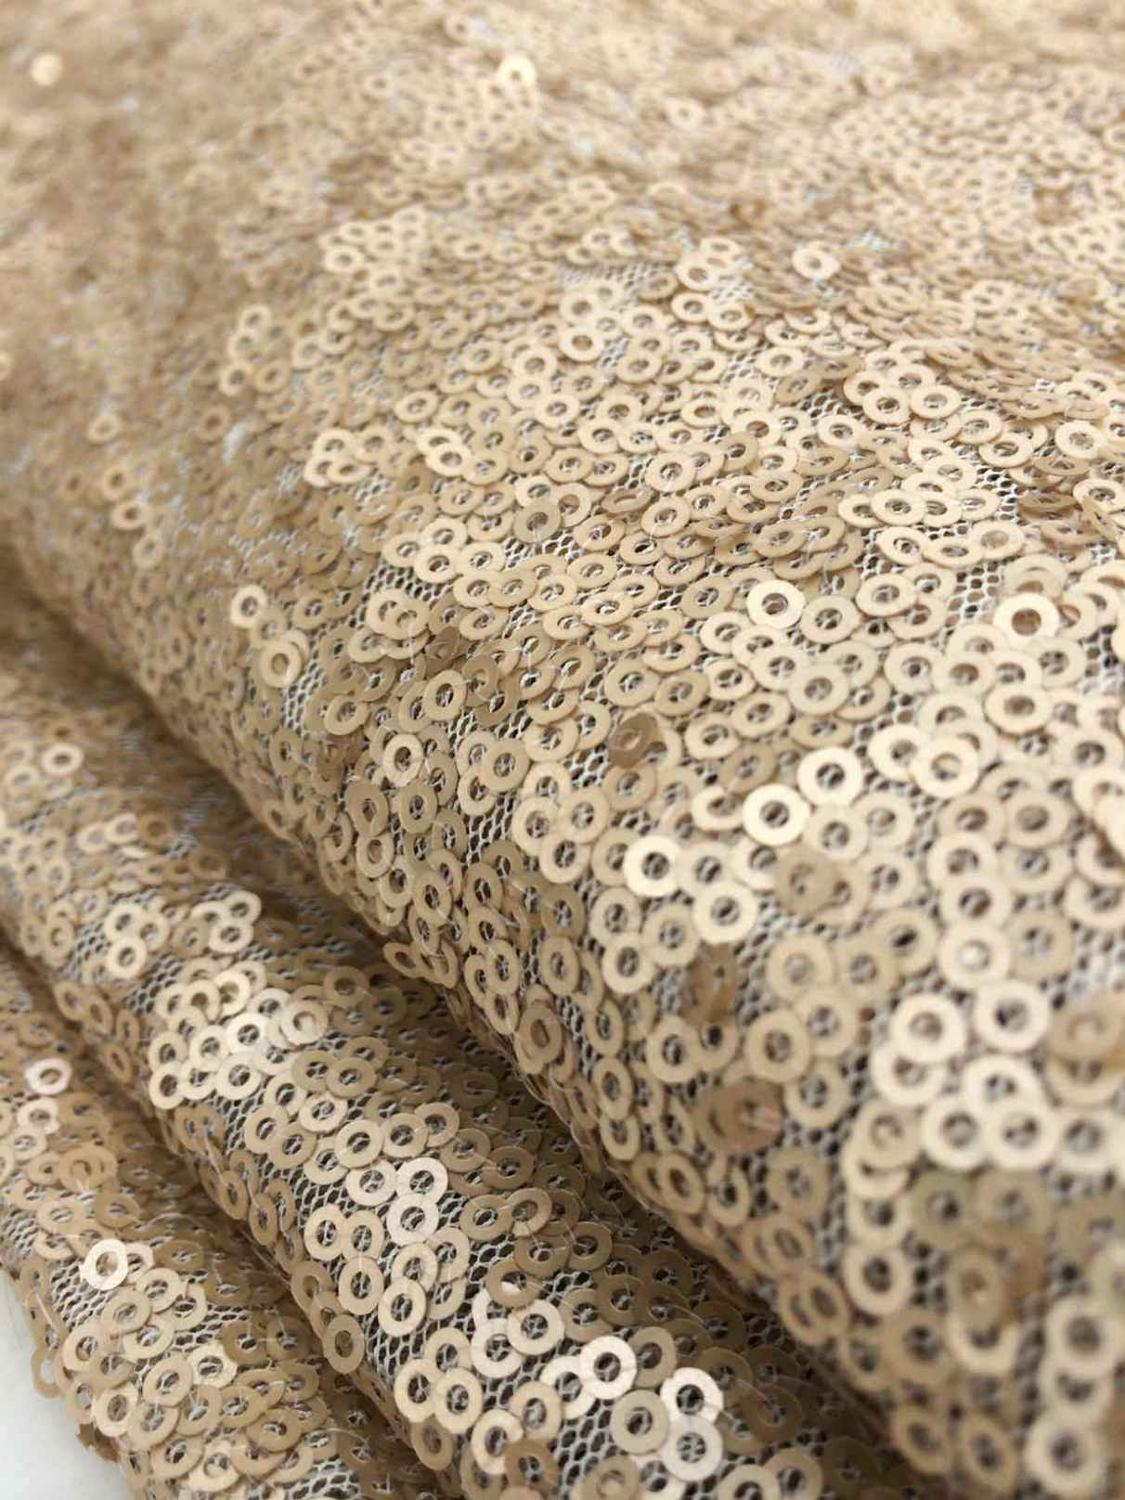 B Y sequin fabric by the yard Champagne Sequin Fabric for Clothes tablecloth table runner Backdrop Stage Party Wedding Decor in Tablecloths from Home Garden